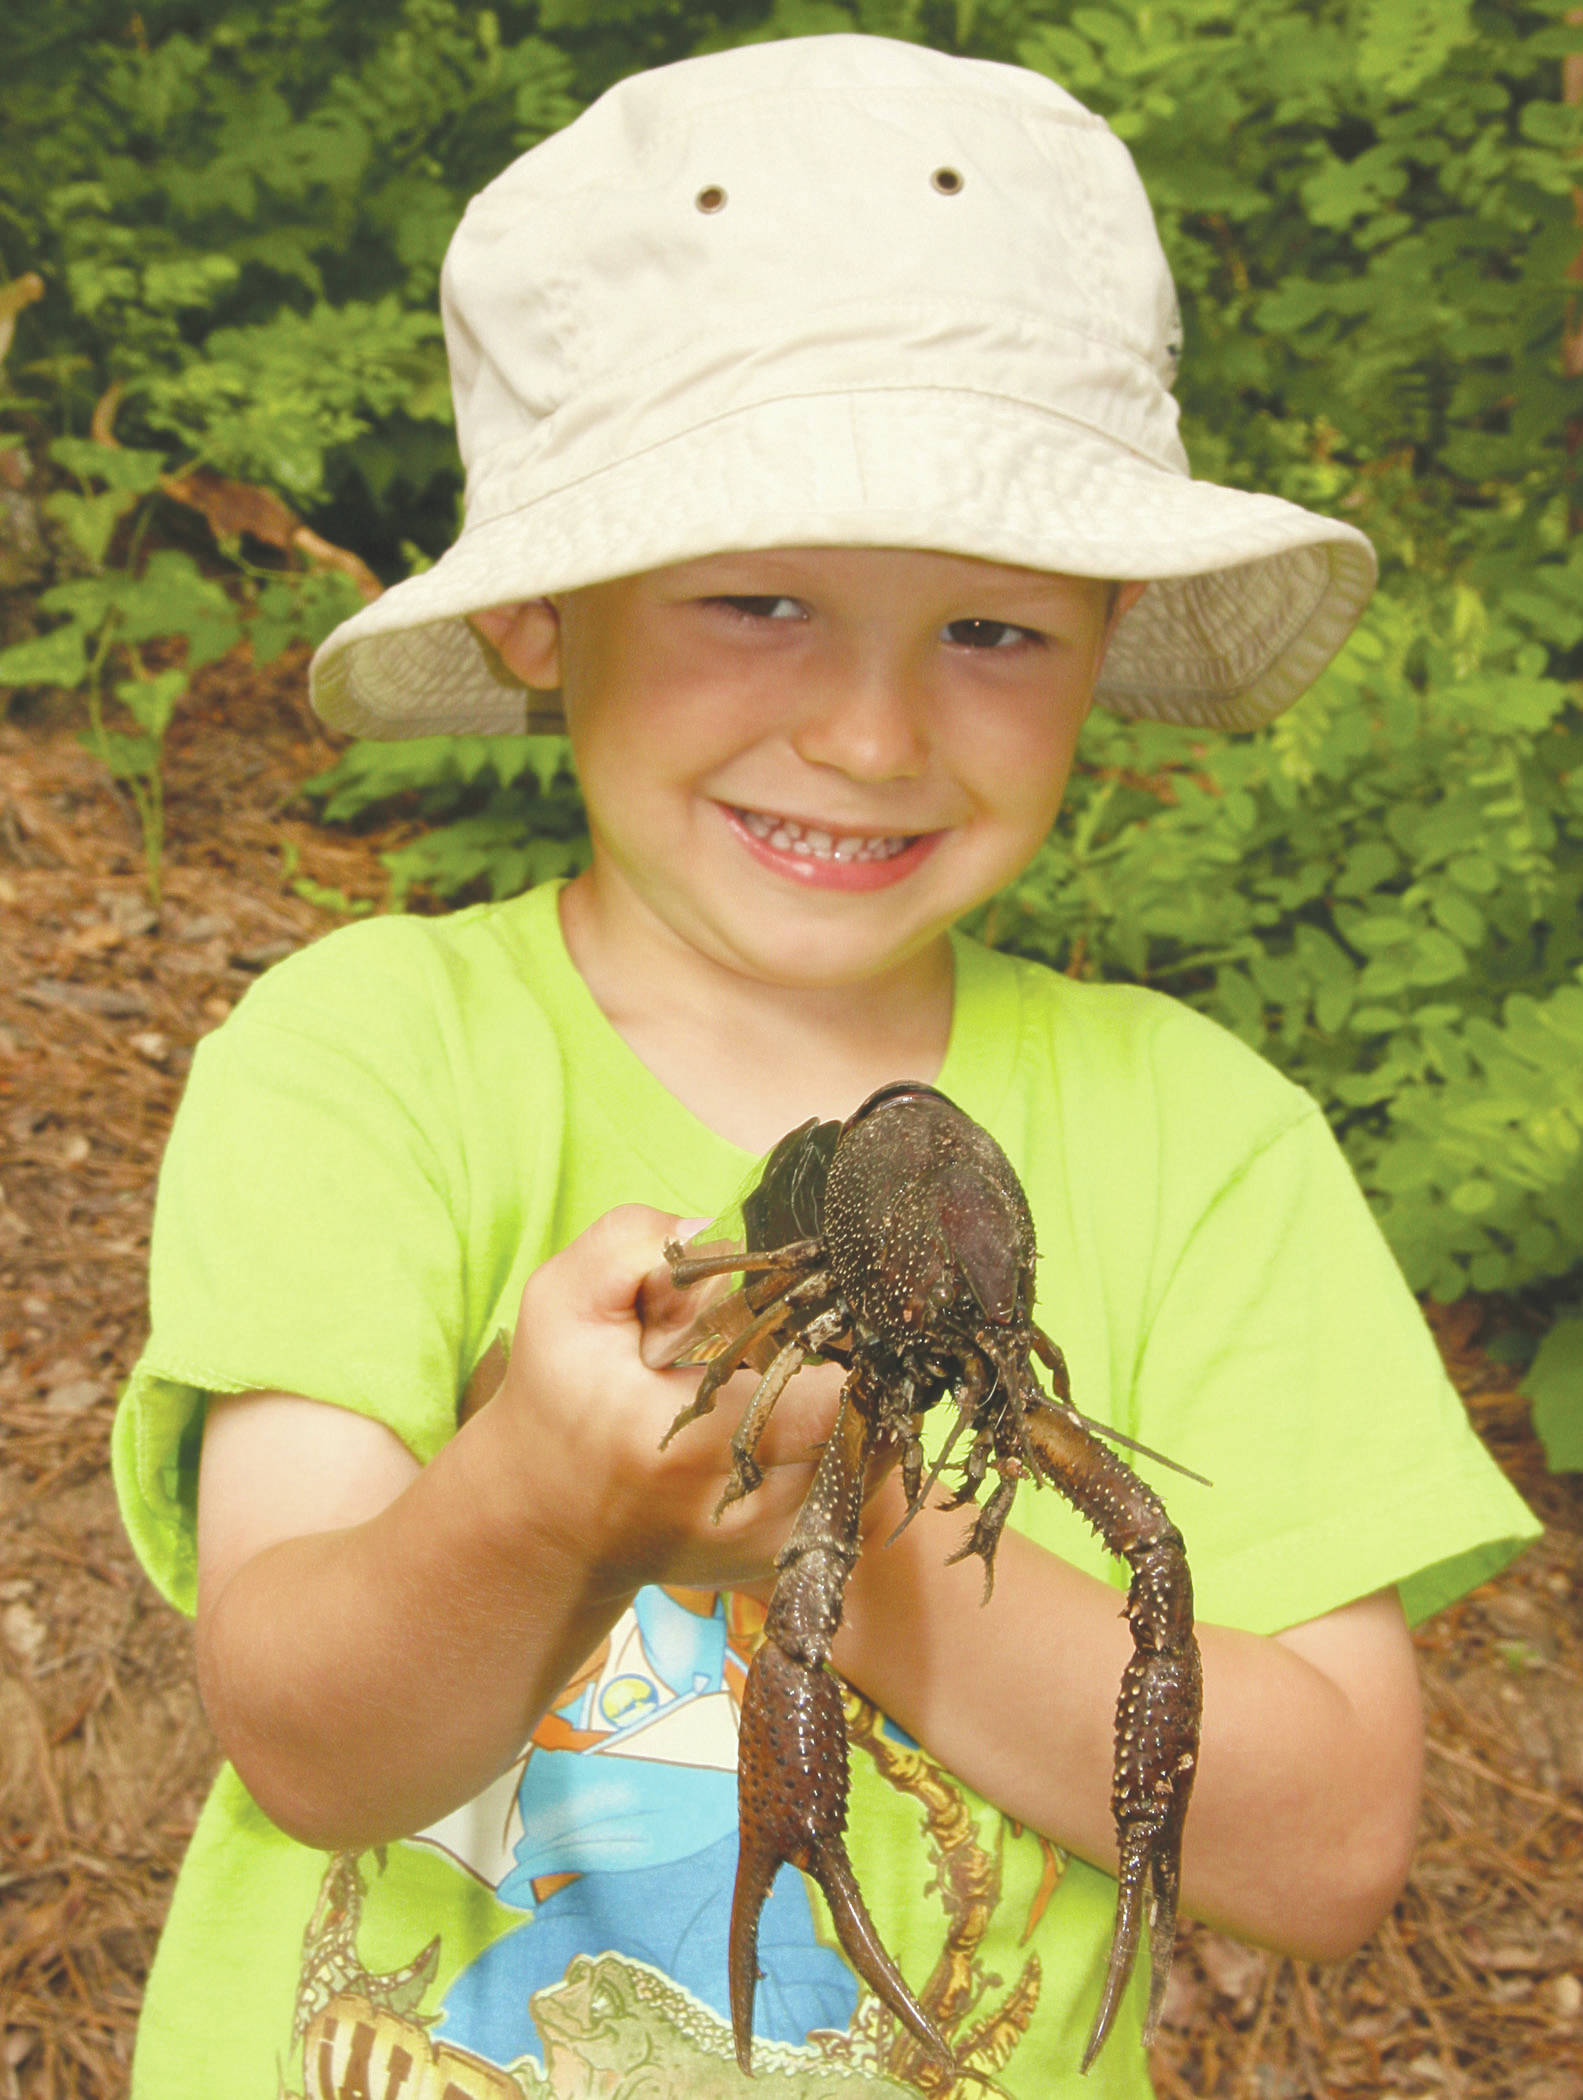 Wyatt, at age 4, helping dad harvest crawfish at White River NWR in Arkansas. (Photo by Matt Conner/USFWS)